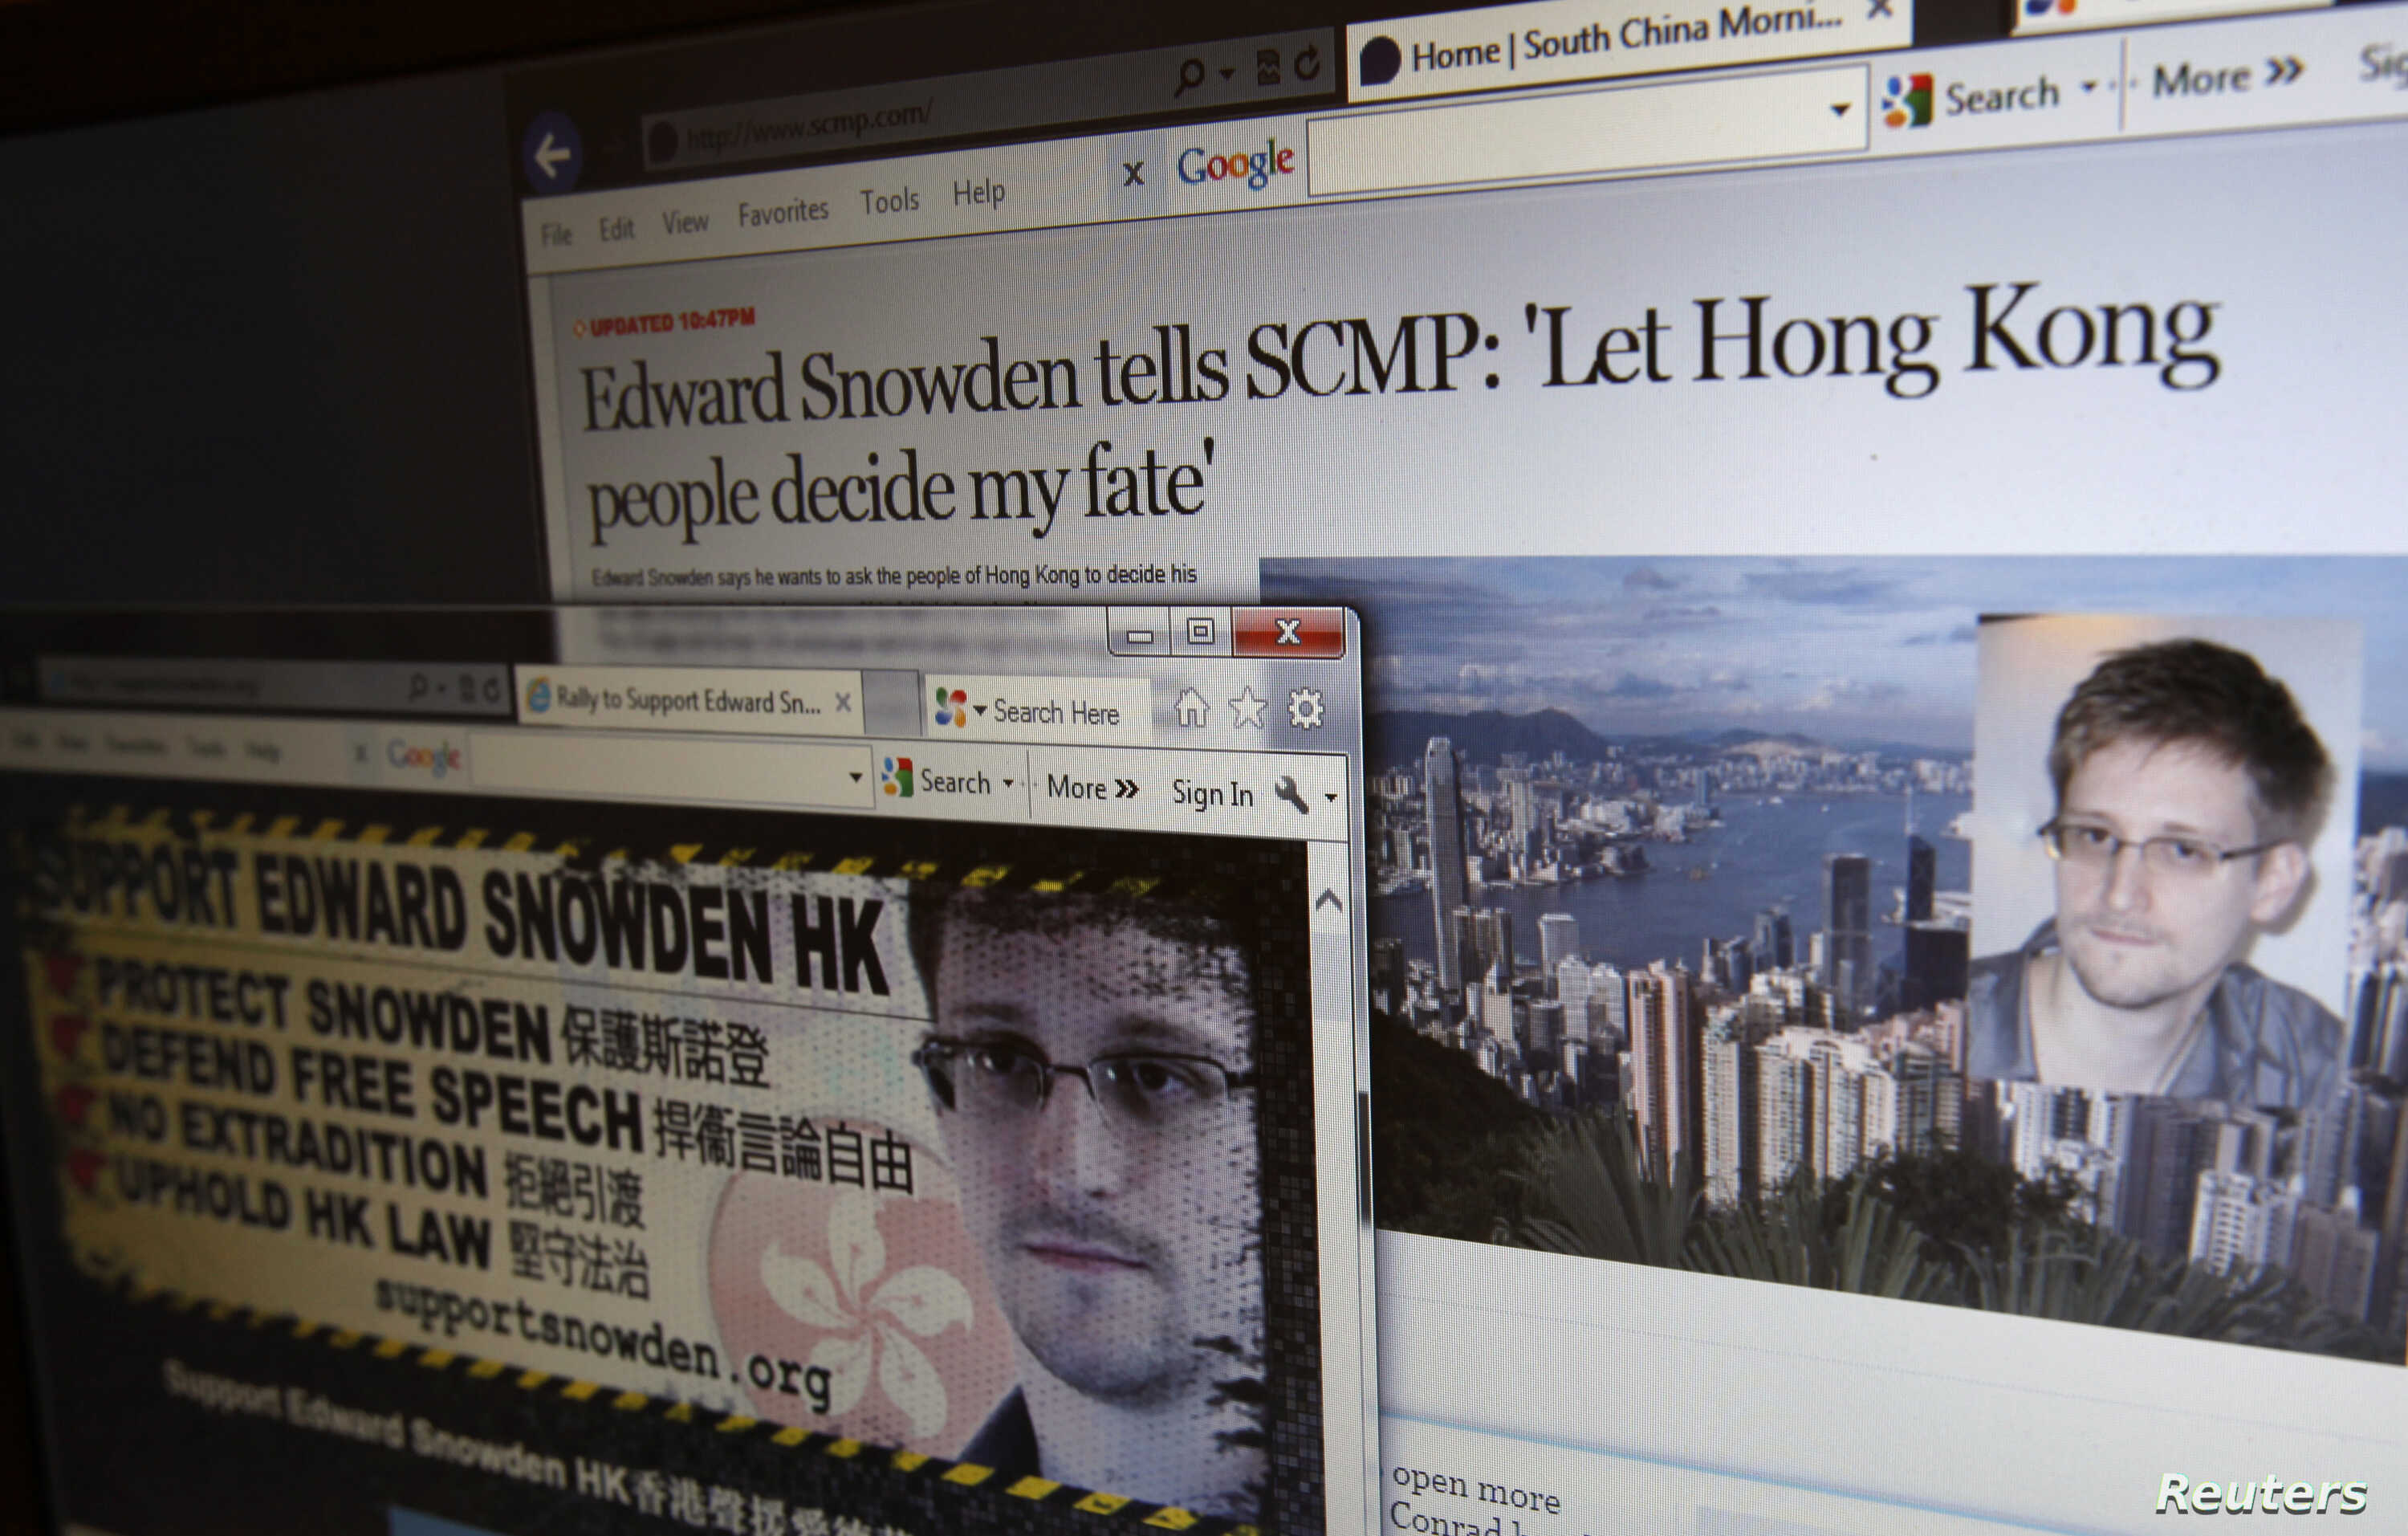 An interview of Edward Snowden by the South China Morning Post newspaper (top) and a website supporting Snowden in Hong Kong, are displayed on a computer screen in Hong Kong in this June 12, 2013 illustration photo.